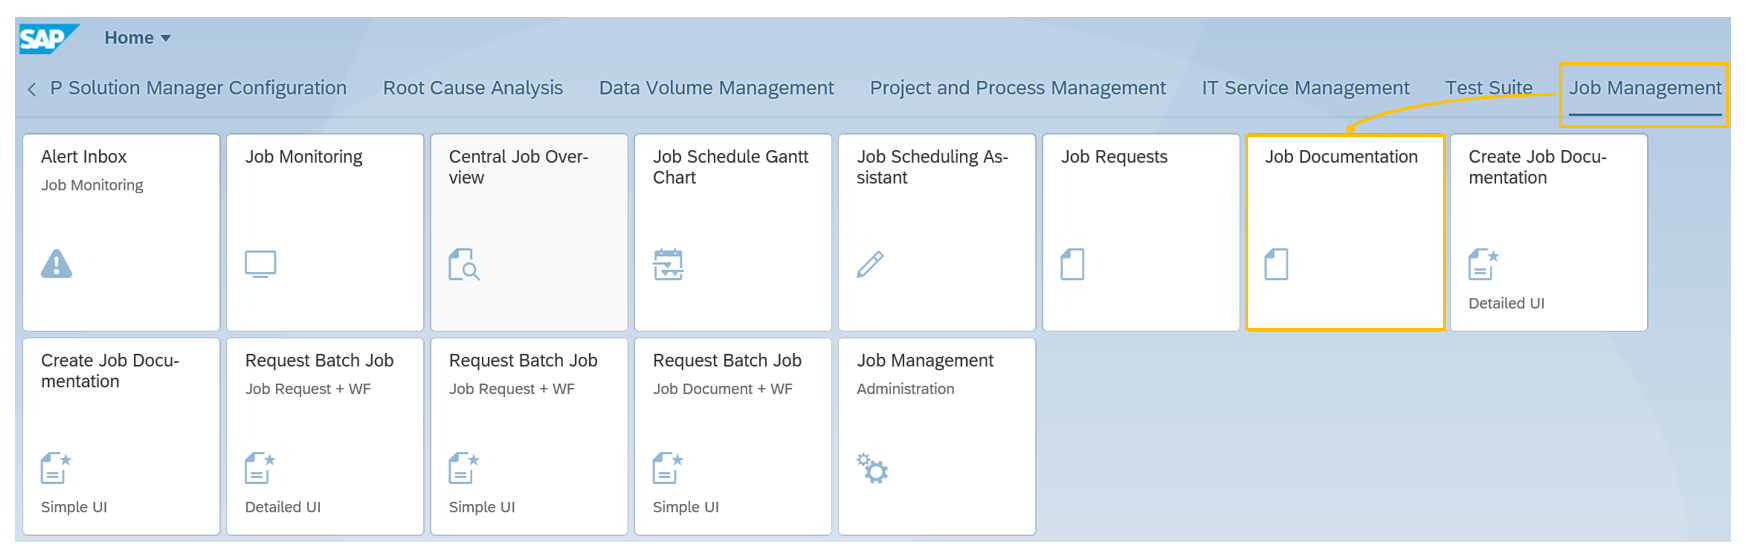 SAP%20Solution%20Manager%207.2%20Fiori%20Launchpad%20Job%20Management